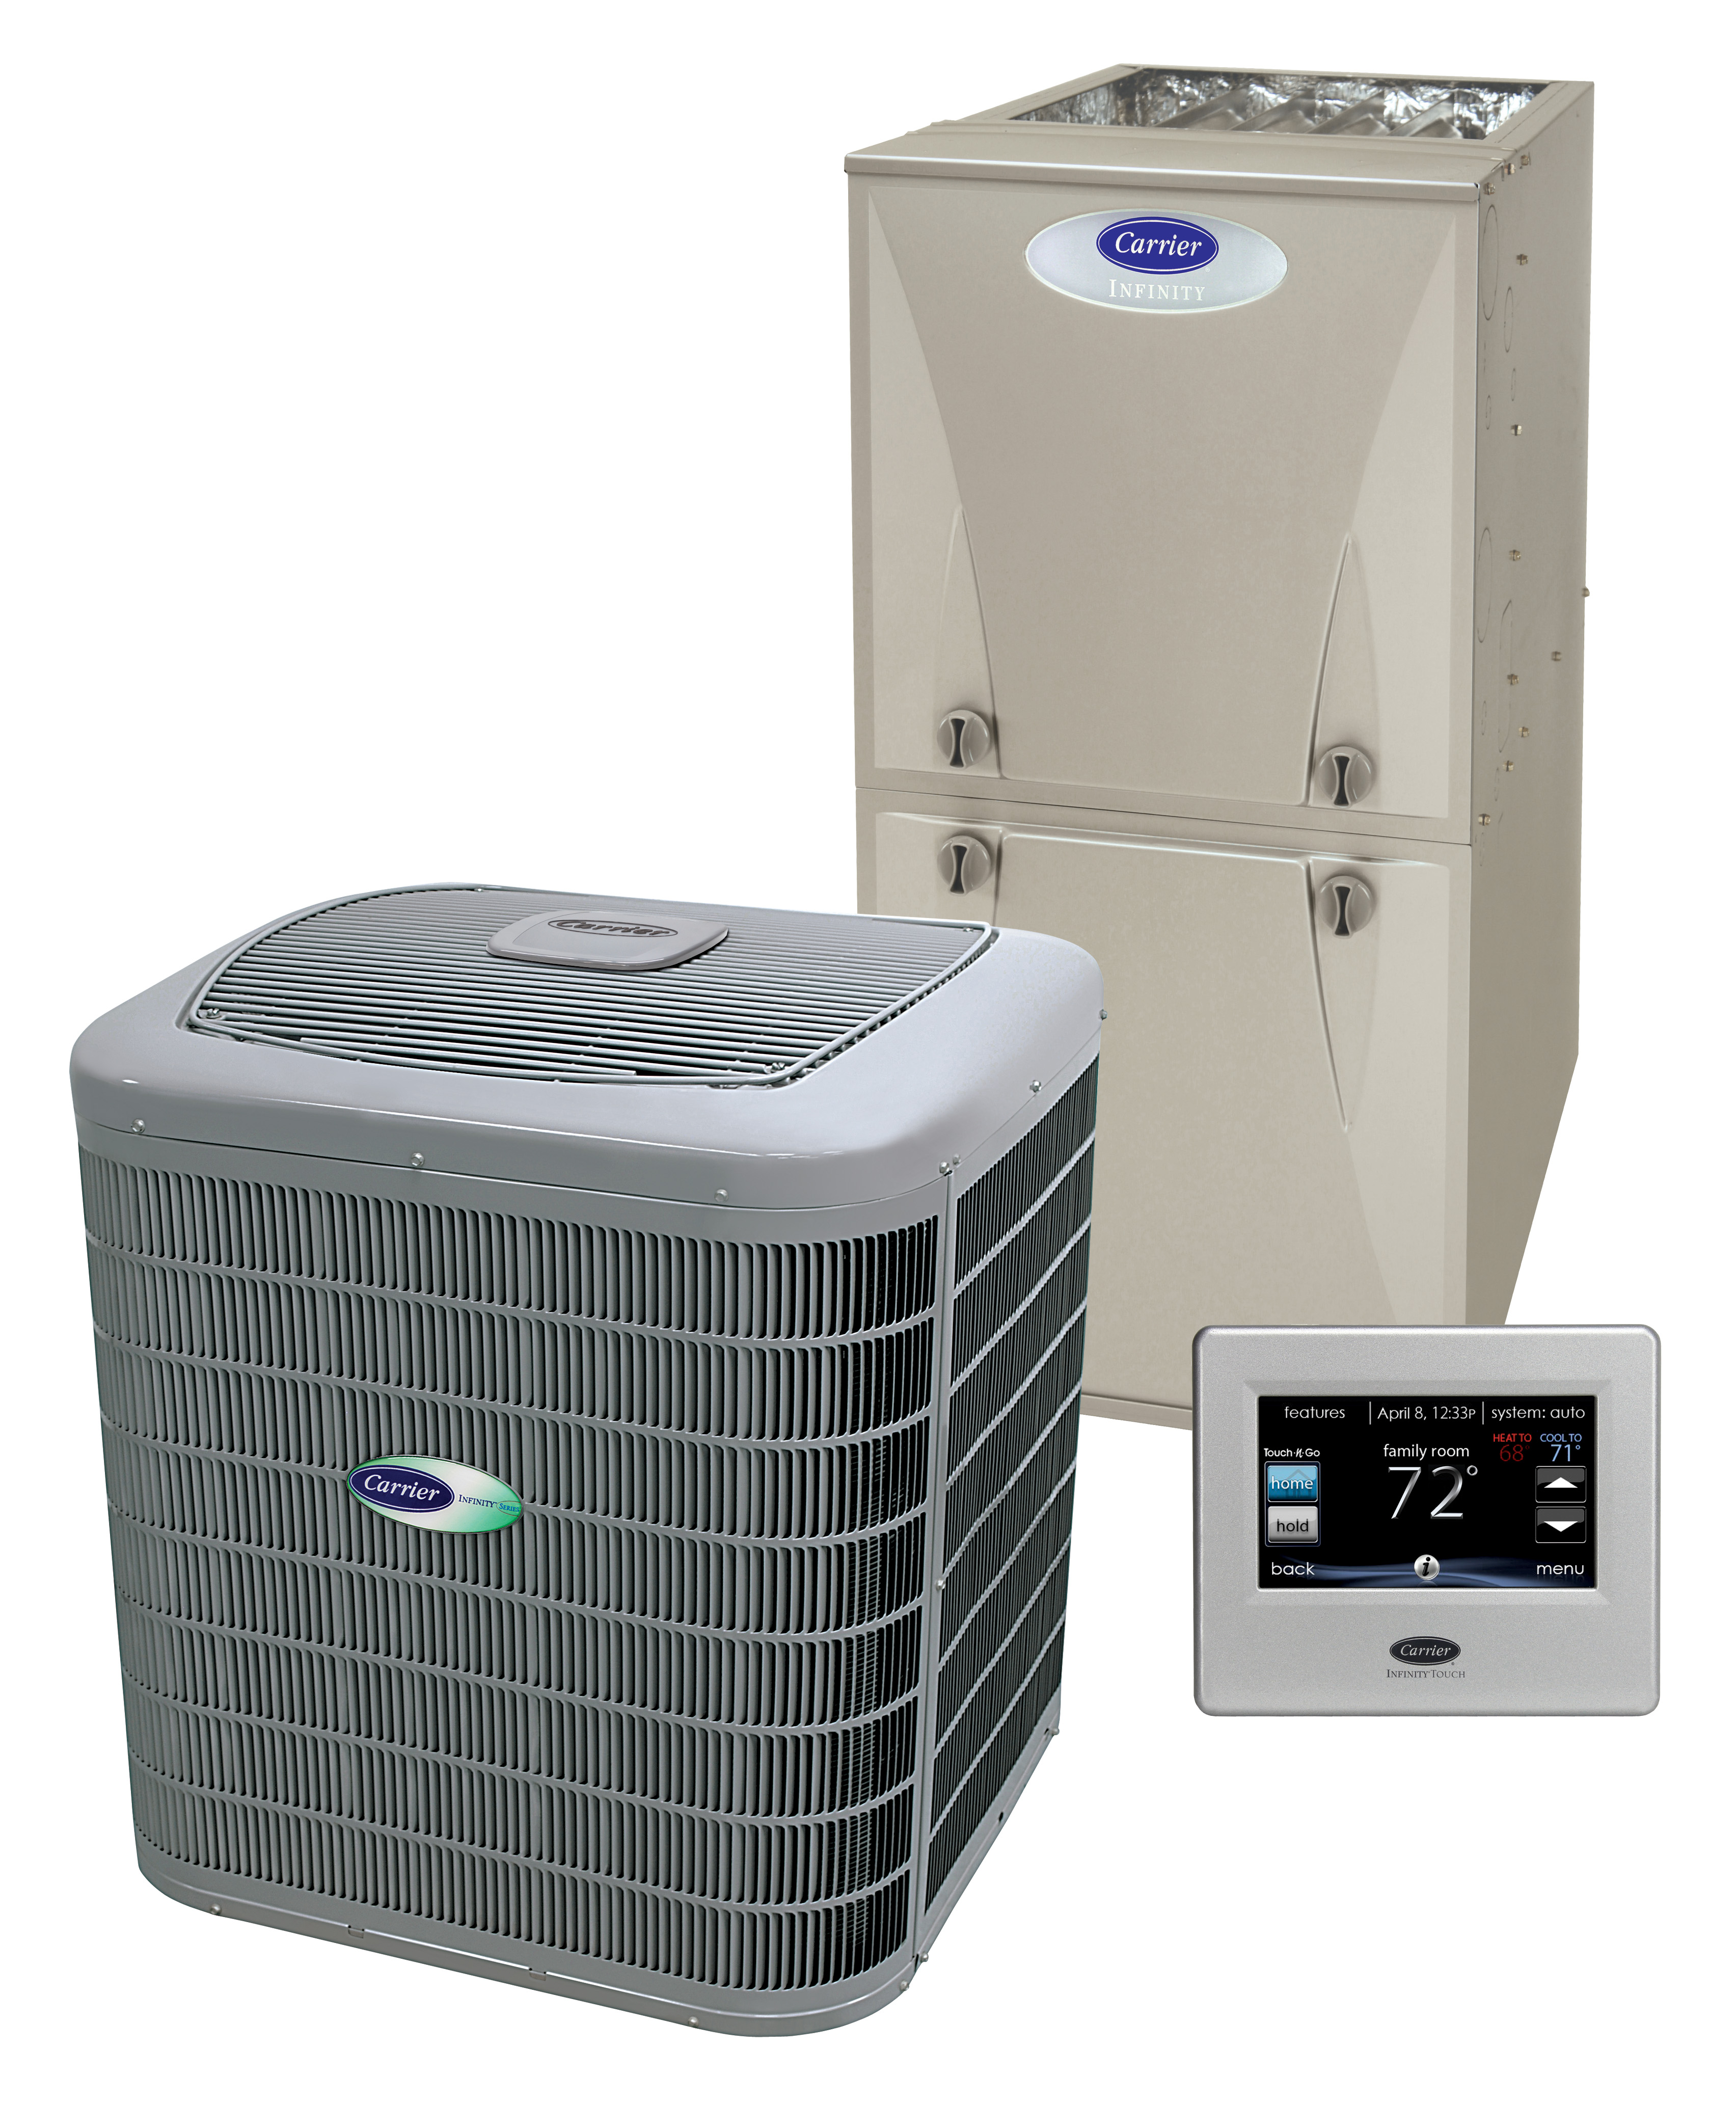 #3E4270 The Right Choice For Replacing Your Furnace Highly Rated 3149 Gas Furnace With Ac wallpapers with 3408x4128 px on helpvideos.info - Air Conditioners, Air Coolers and more